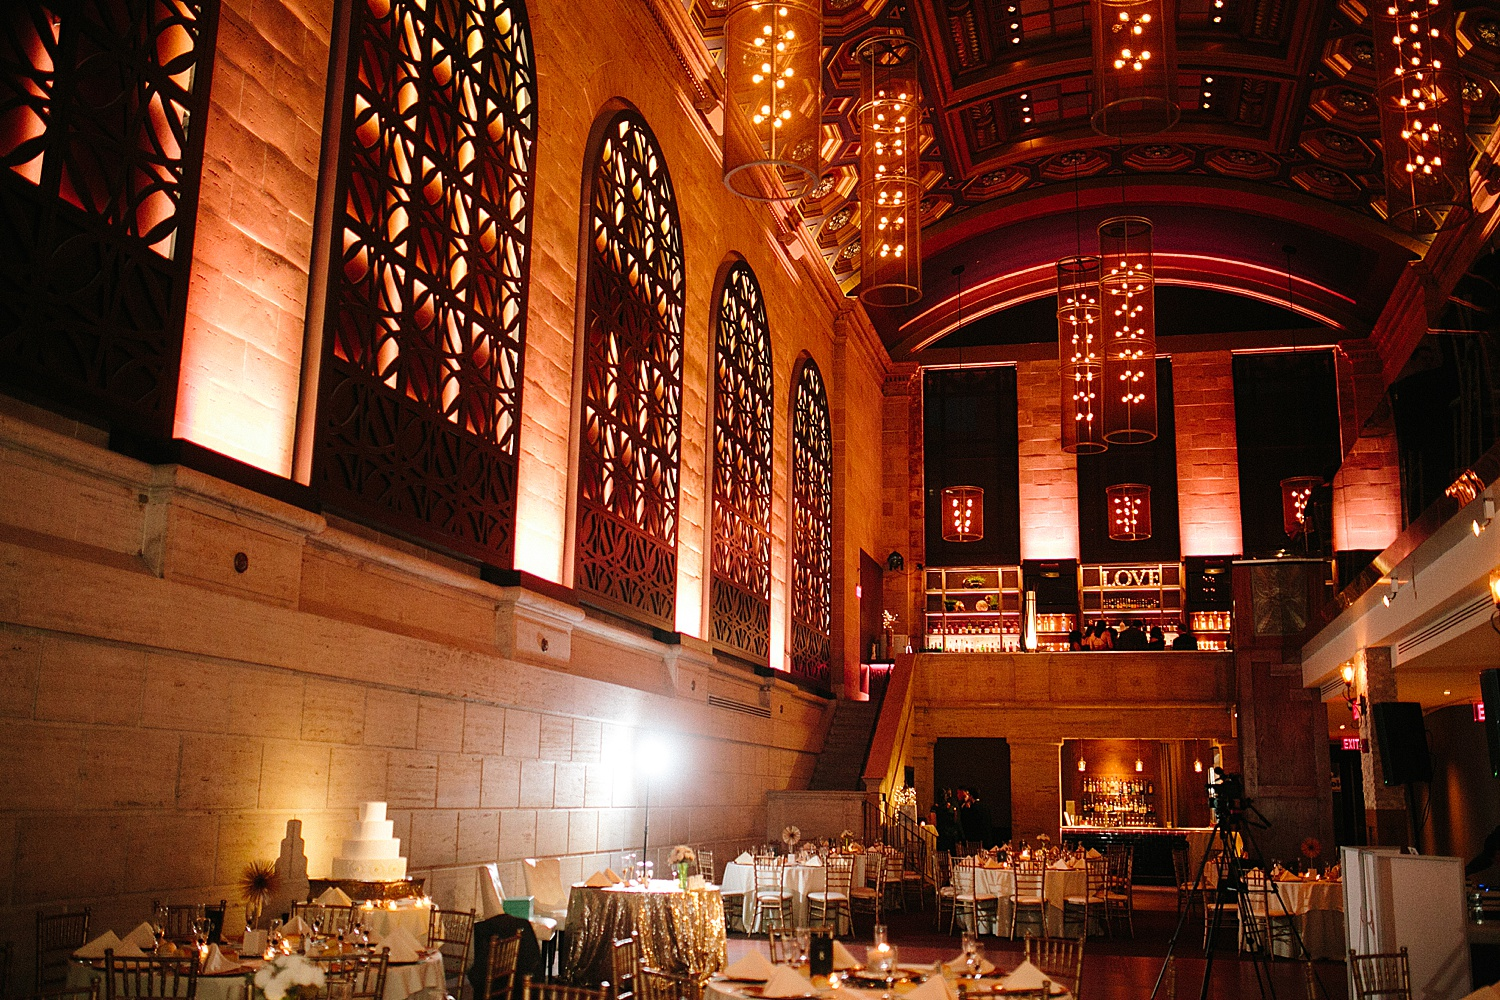 kirstentony_uniontrust_finleycatering_christchurch_philadelphia_wedding_image_0724.jpg